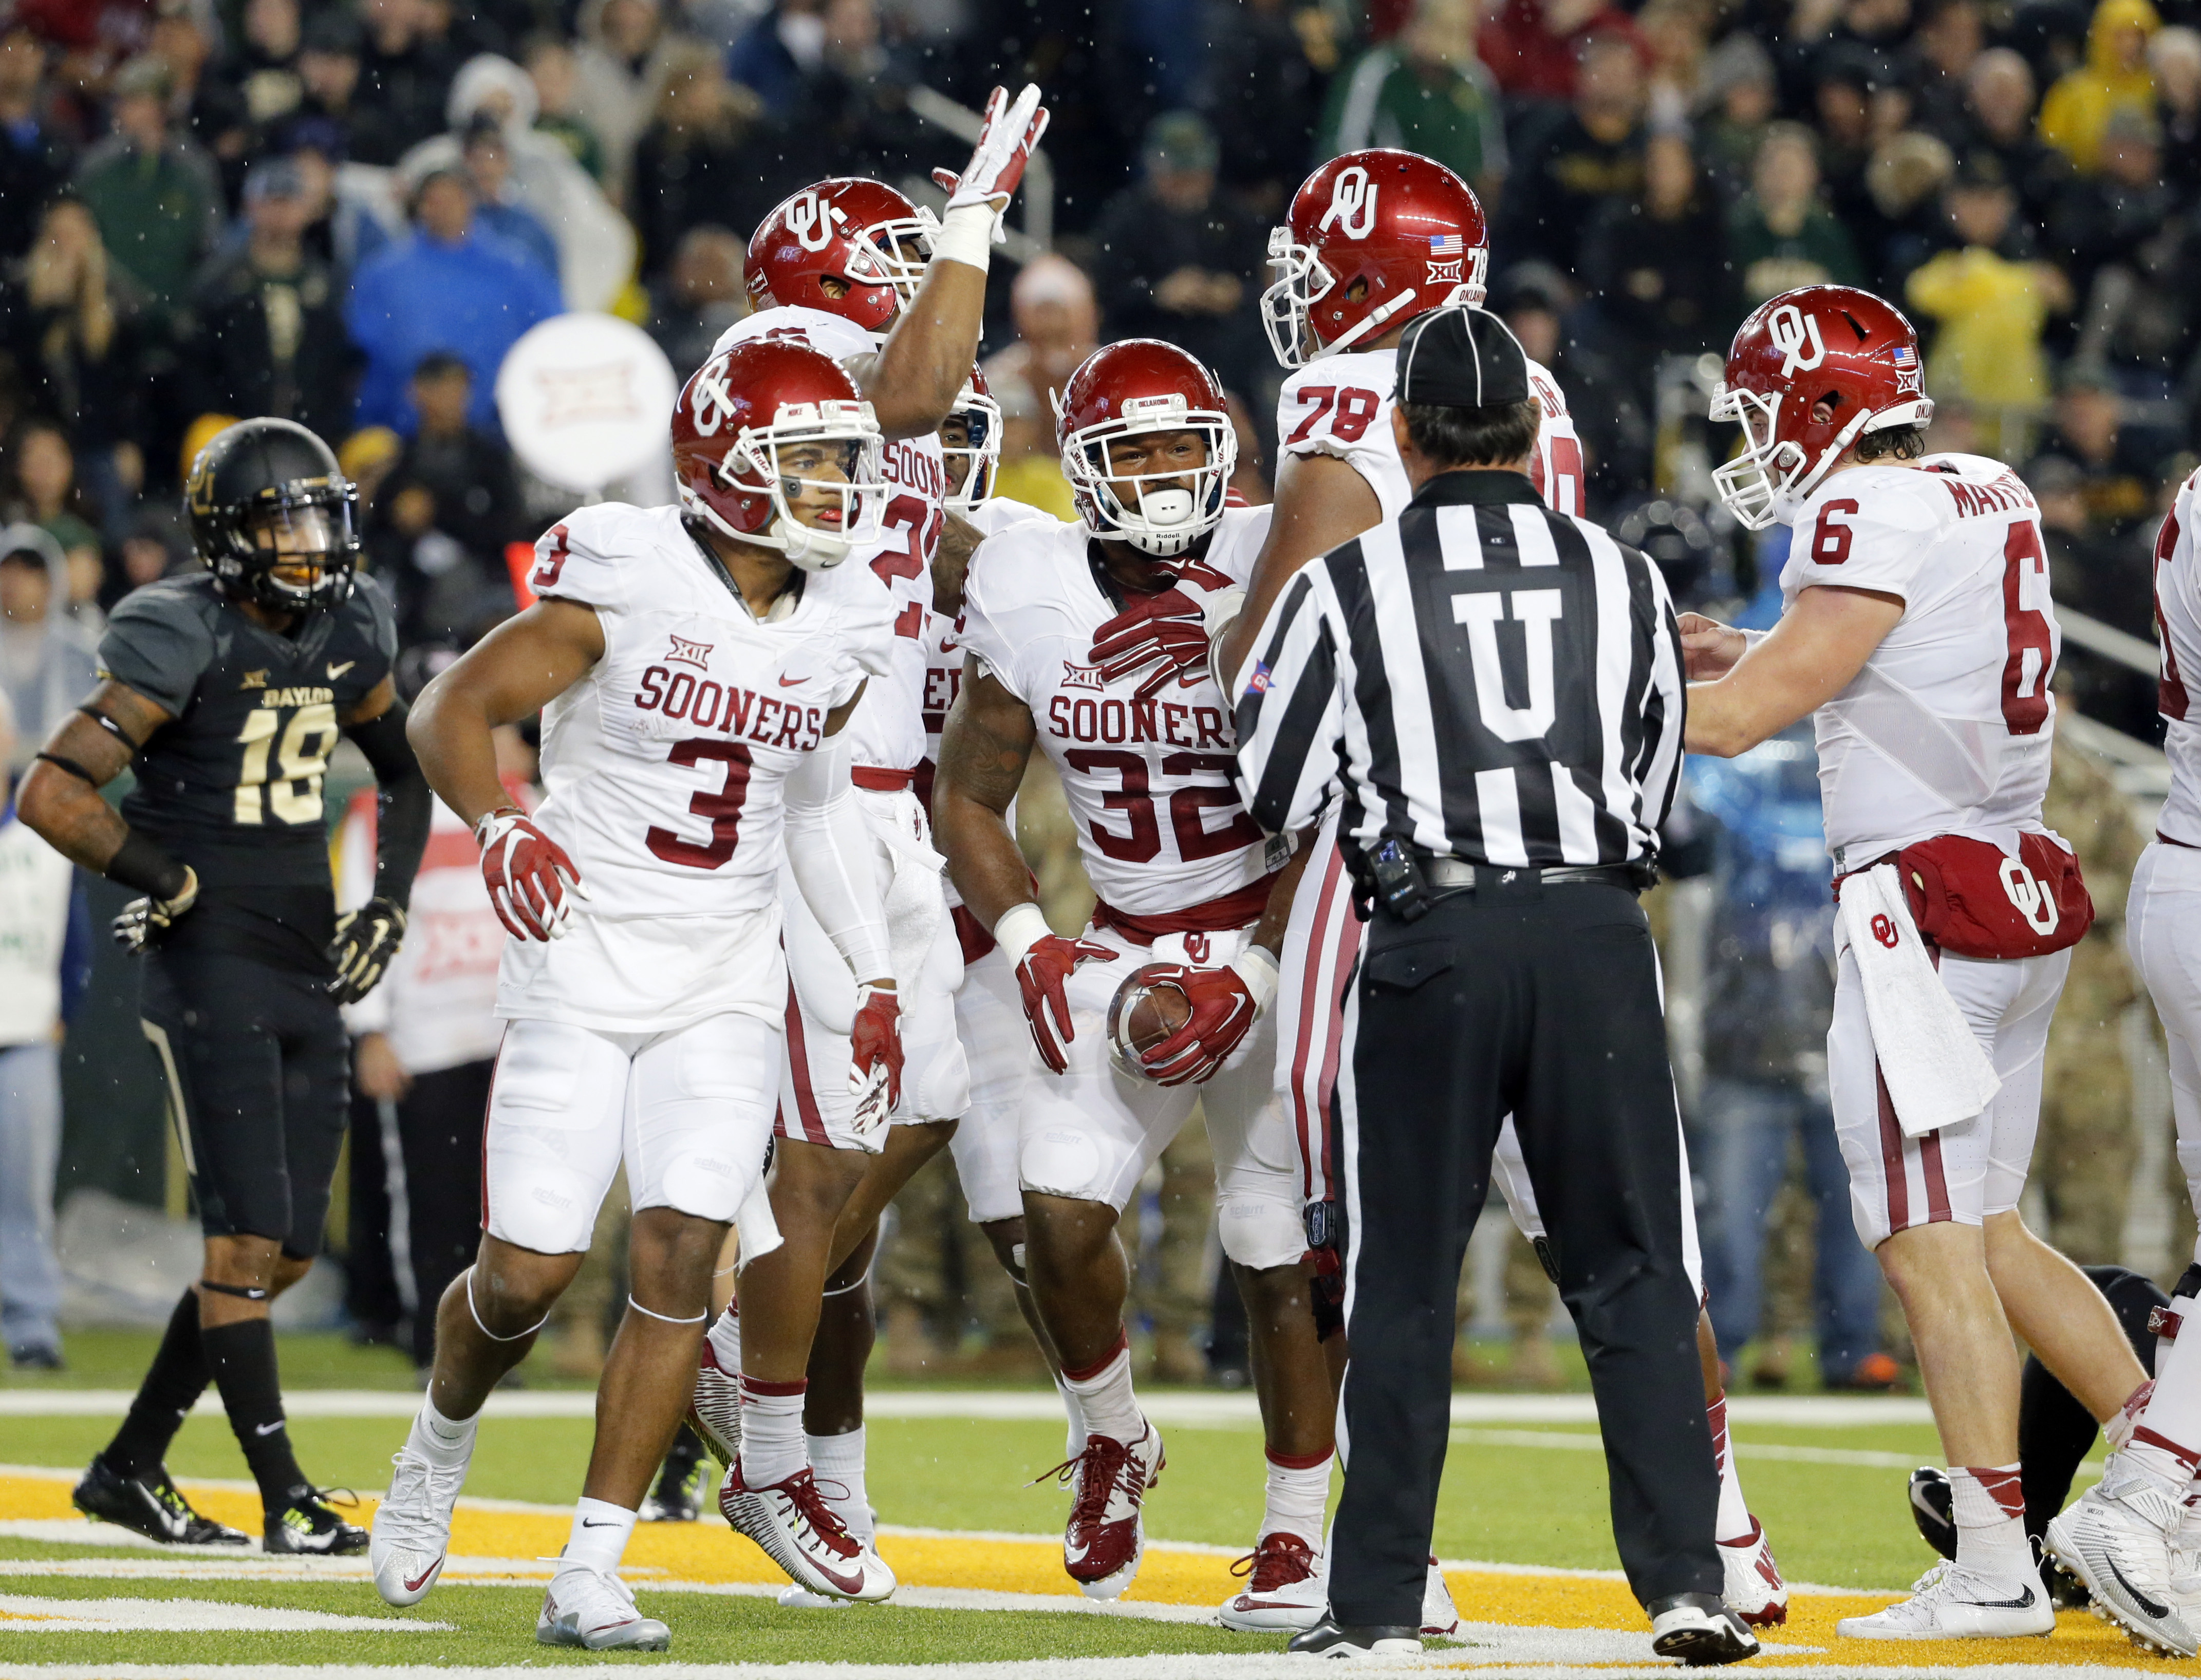 FILE - In this Saturday, Nov. 14, 2015, file photo, Oklahoma's Sterling Shepard (3), Orlando Brown (78) and Baker Mayfield (6) celebrate a touchdown scored by Samaje Perine (32) on a running play against Baylor in the first half of an NCAA college footbal